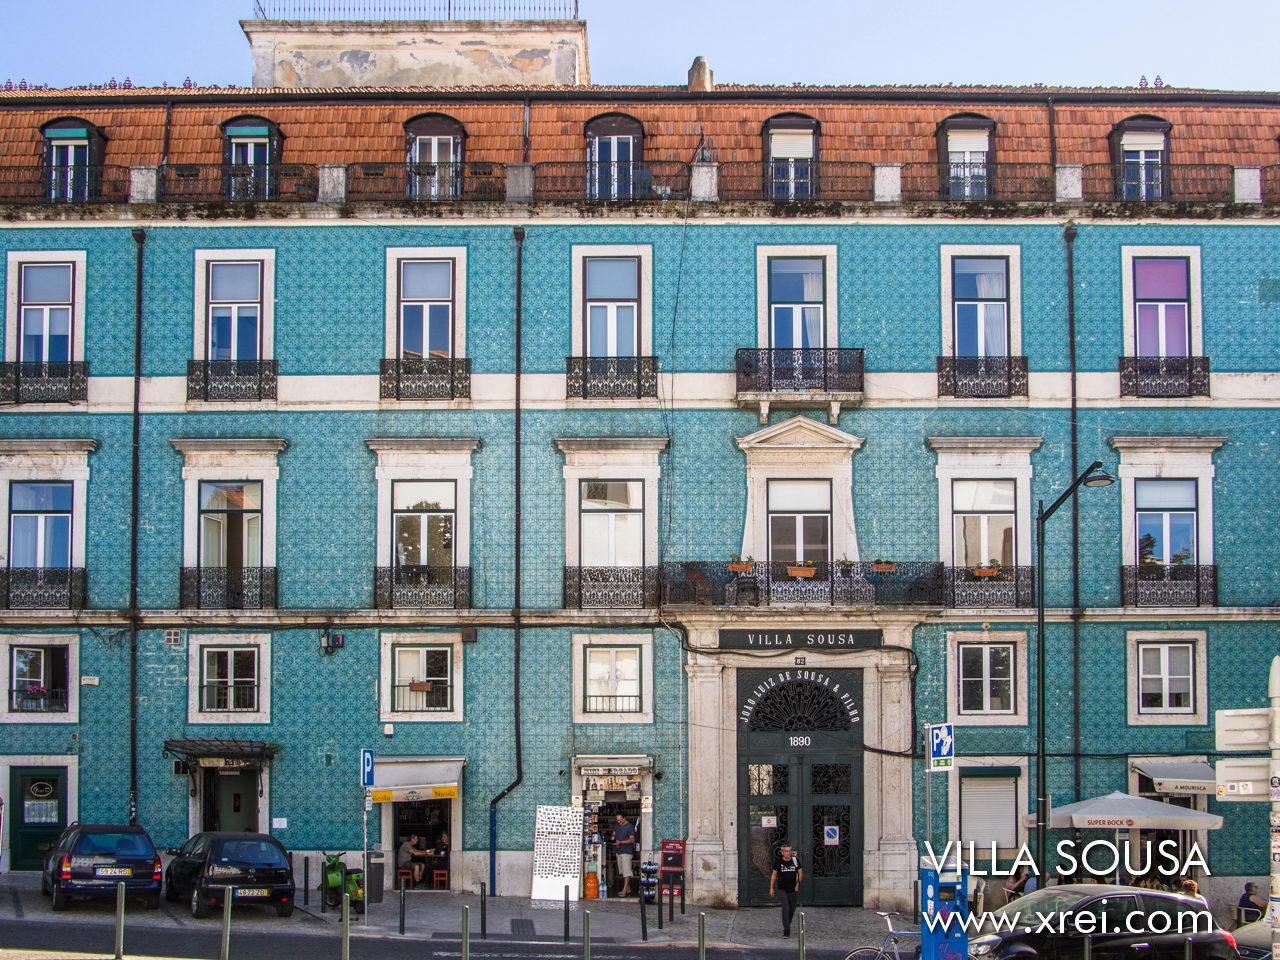 Villa Sousa is a condominium rebuilt in 1890 in a palace abandoned by order of Jão Luís de Sousa in order to house the family and the workers.